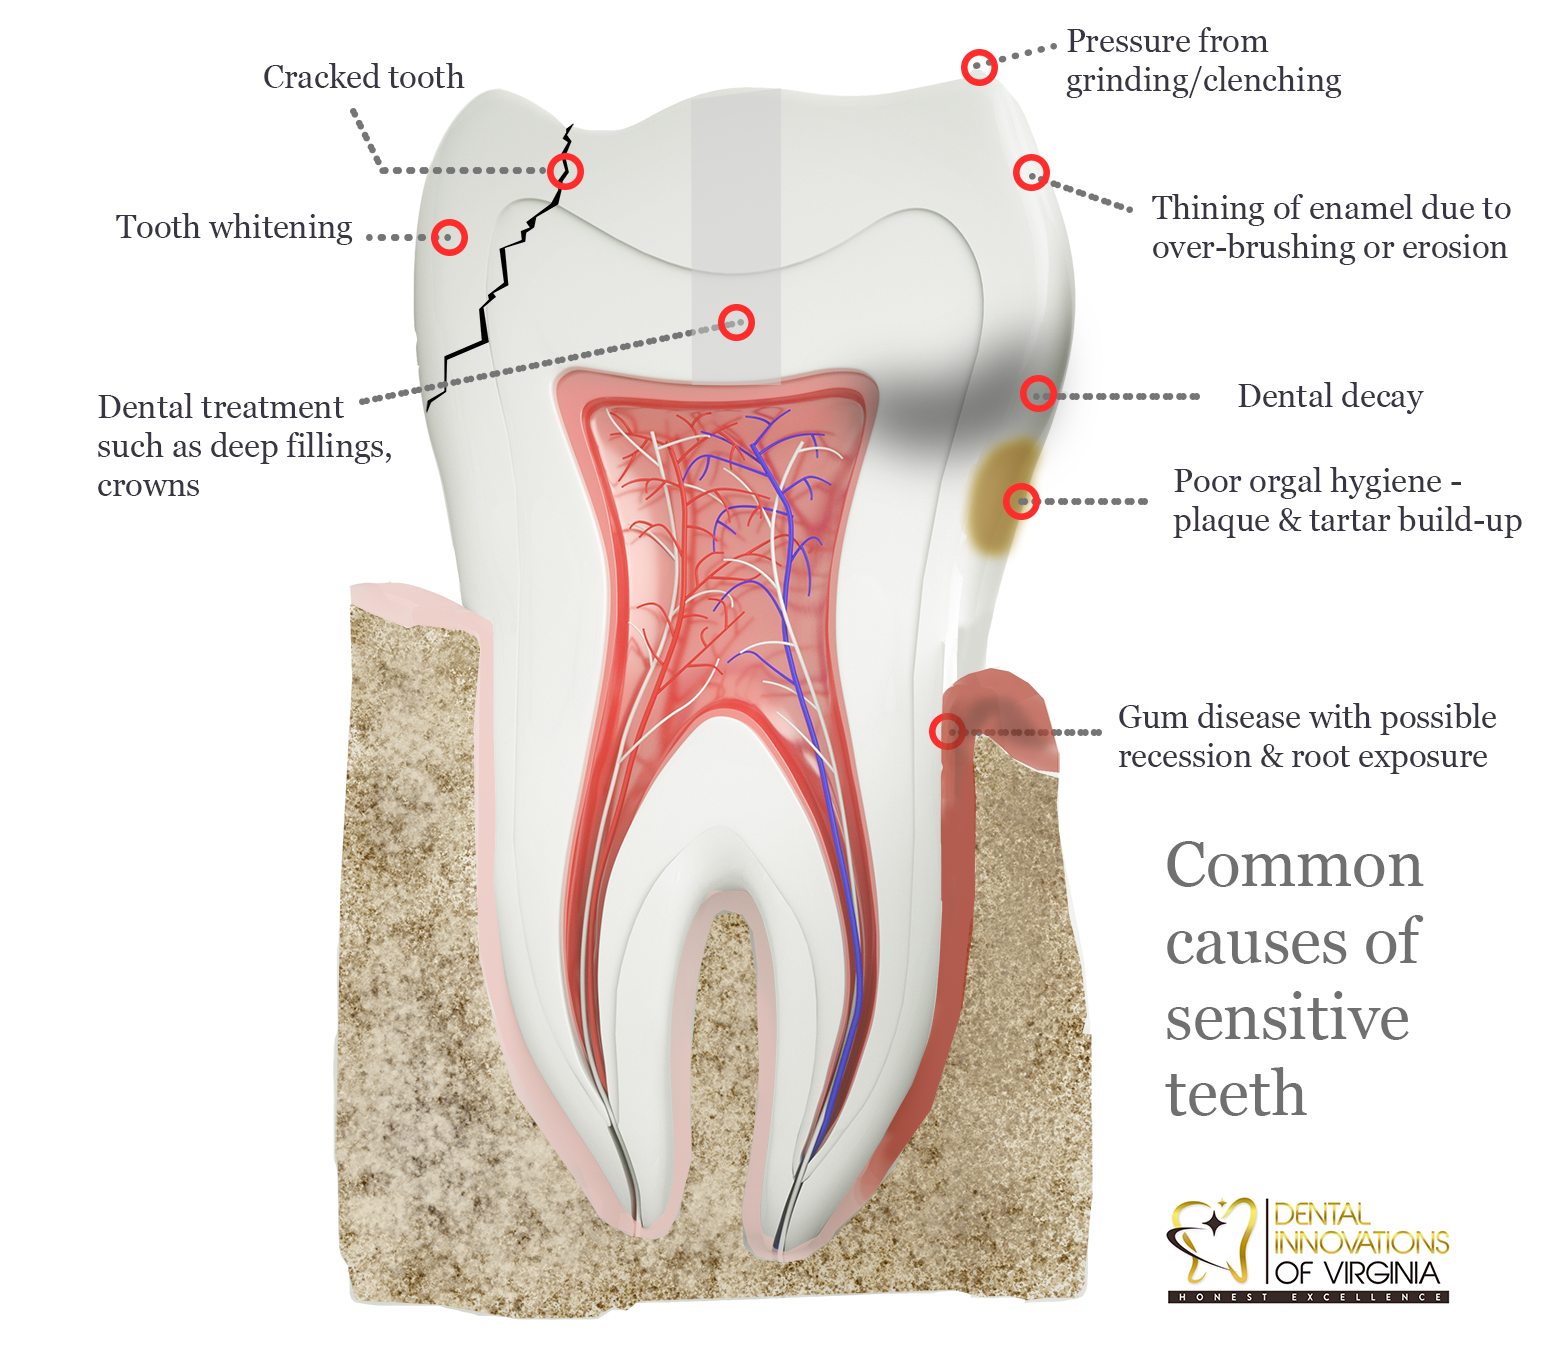 Common causes for sensitive teeth or gum